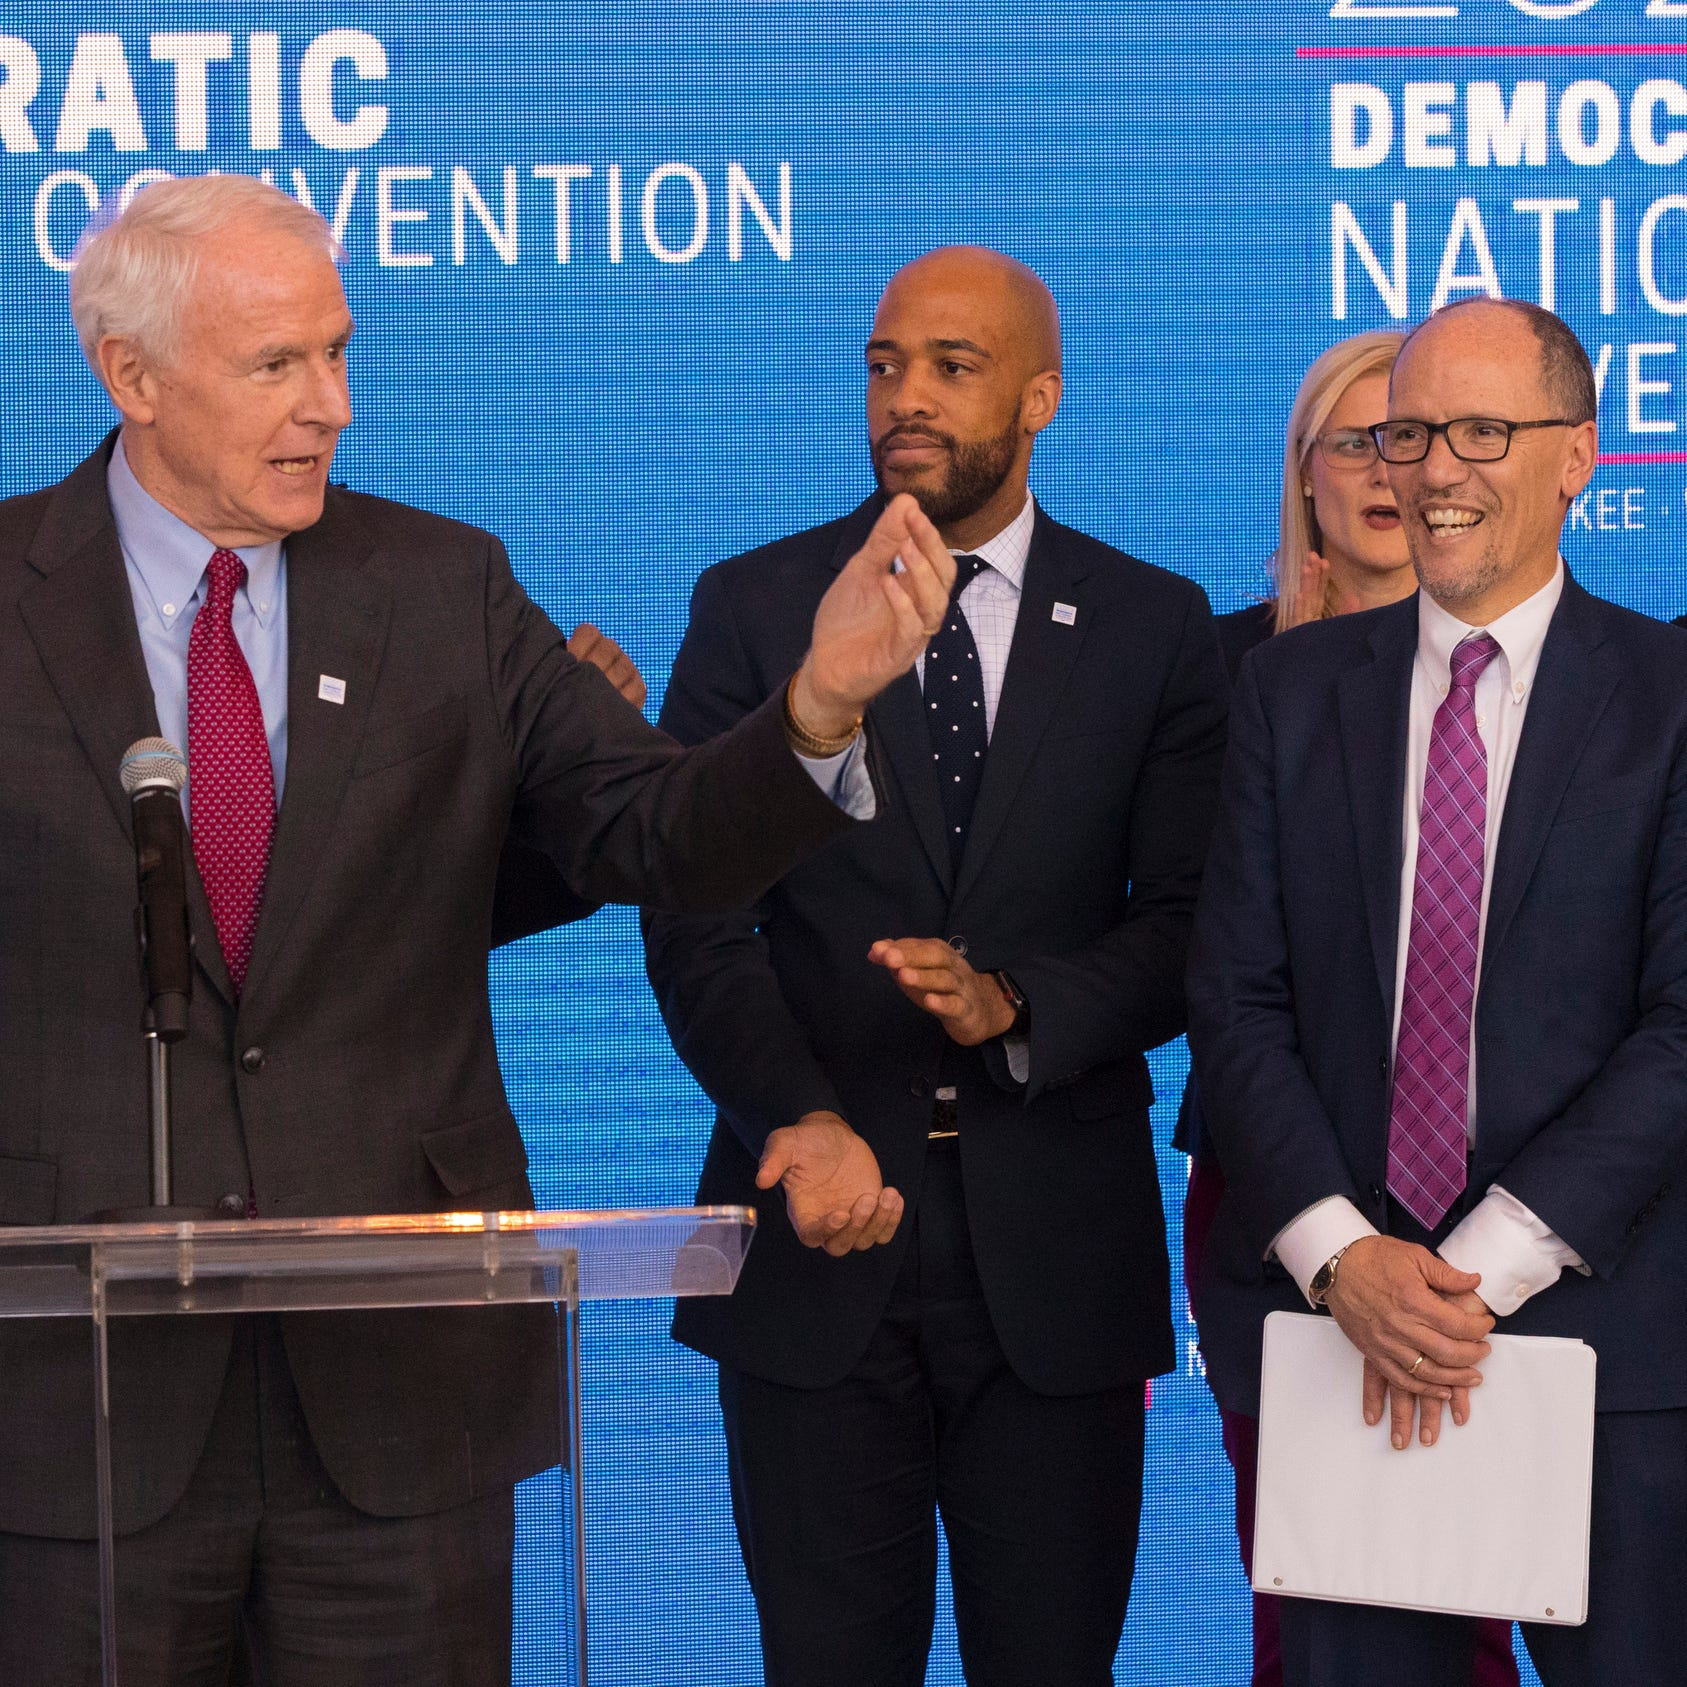 Milwaukee Mayor Tom Barrett (left) speaks during the official announcement that Milwaukee will host the 2020 Democratic National Convention at Fiserv Forum on Monday. Standing to his left are Lt. Gov. Mandela Barnes, Democratic National Committee Chairman Tom Perez and Gov. Tony Evers.